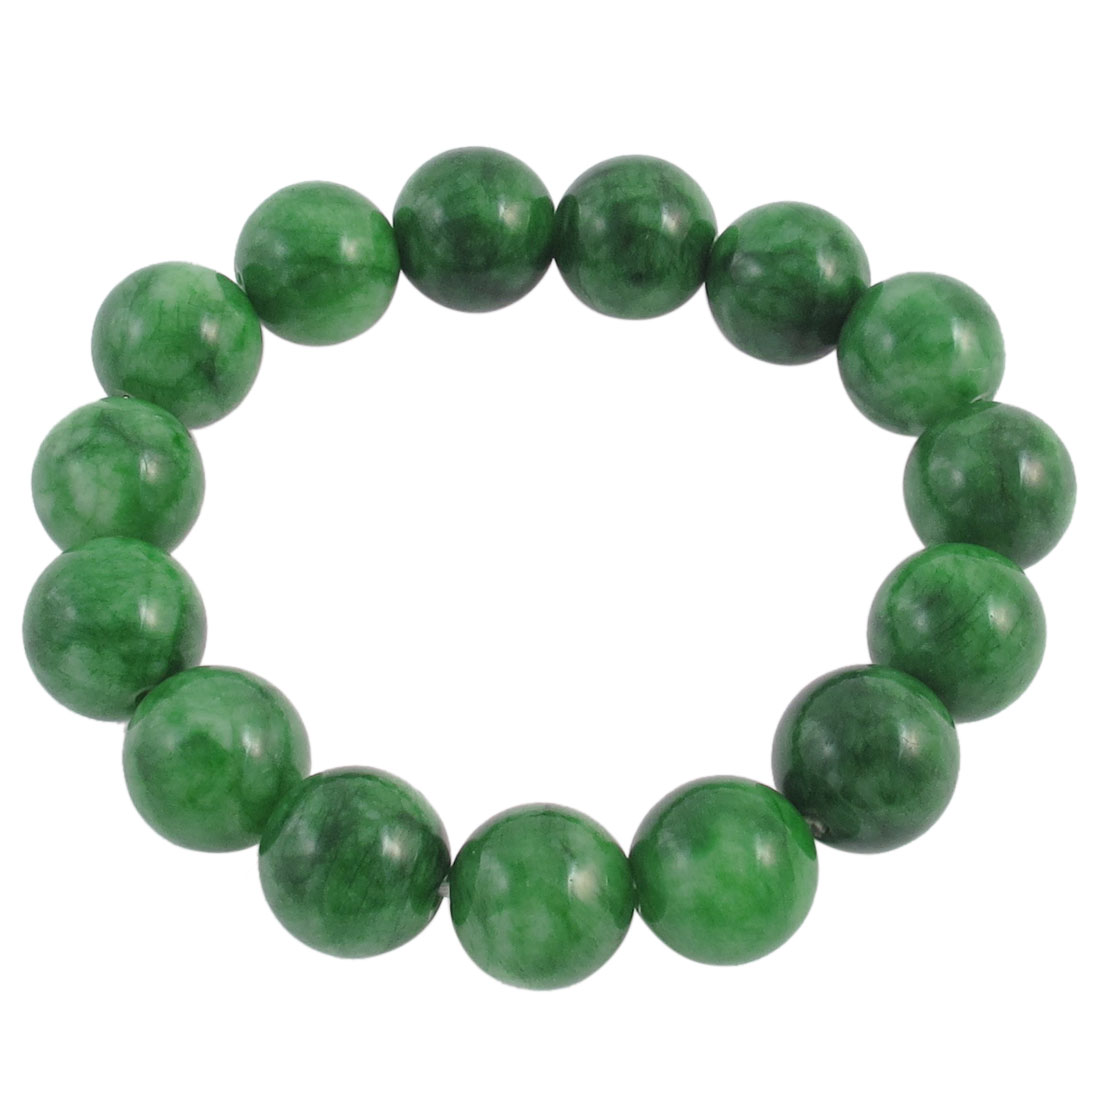 Woman Round Faux Jade Bead Linked Elastic Wrist Bracelet Bangle Green